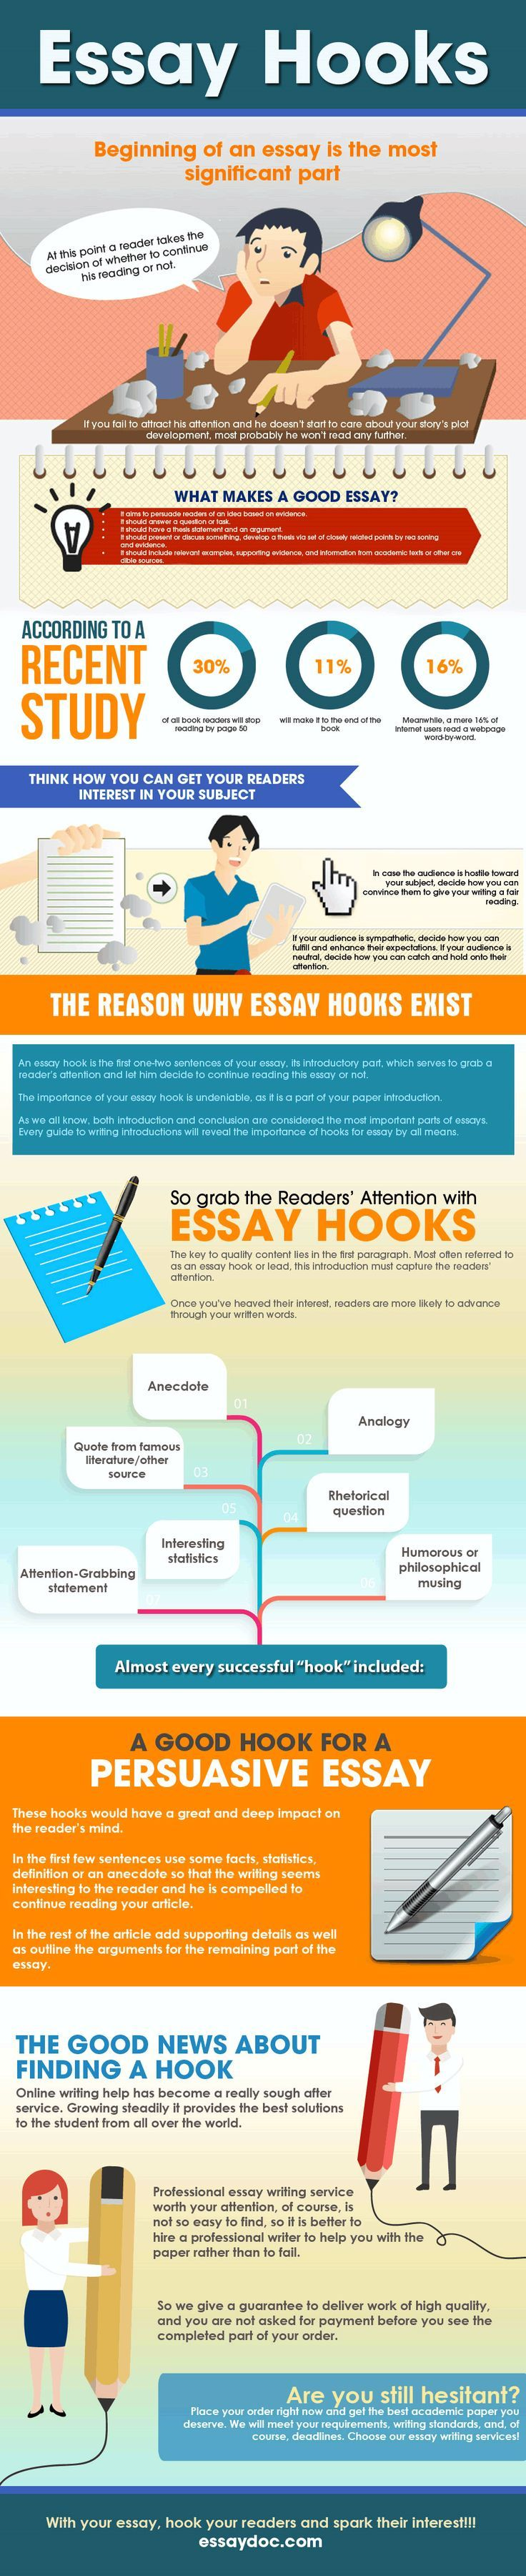 essay hooks infographic hooks infographic and infographic essay hooks infographic education